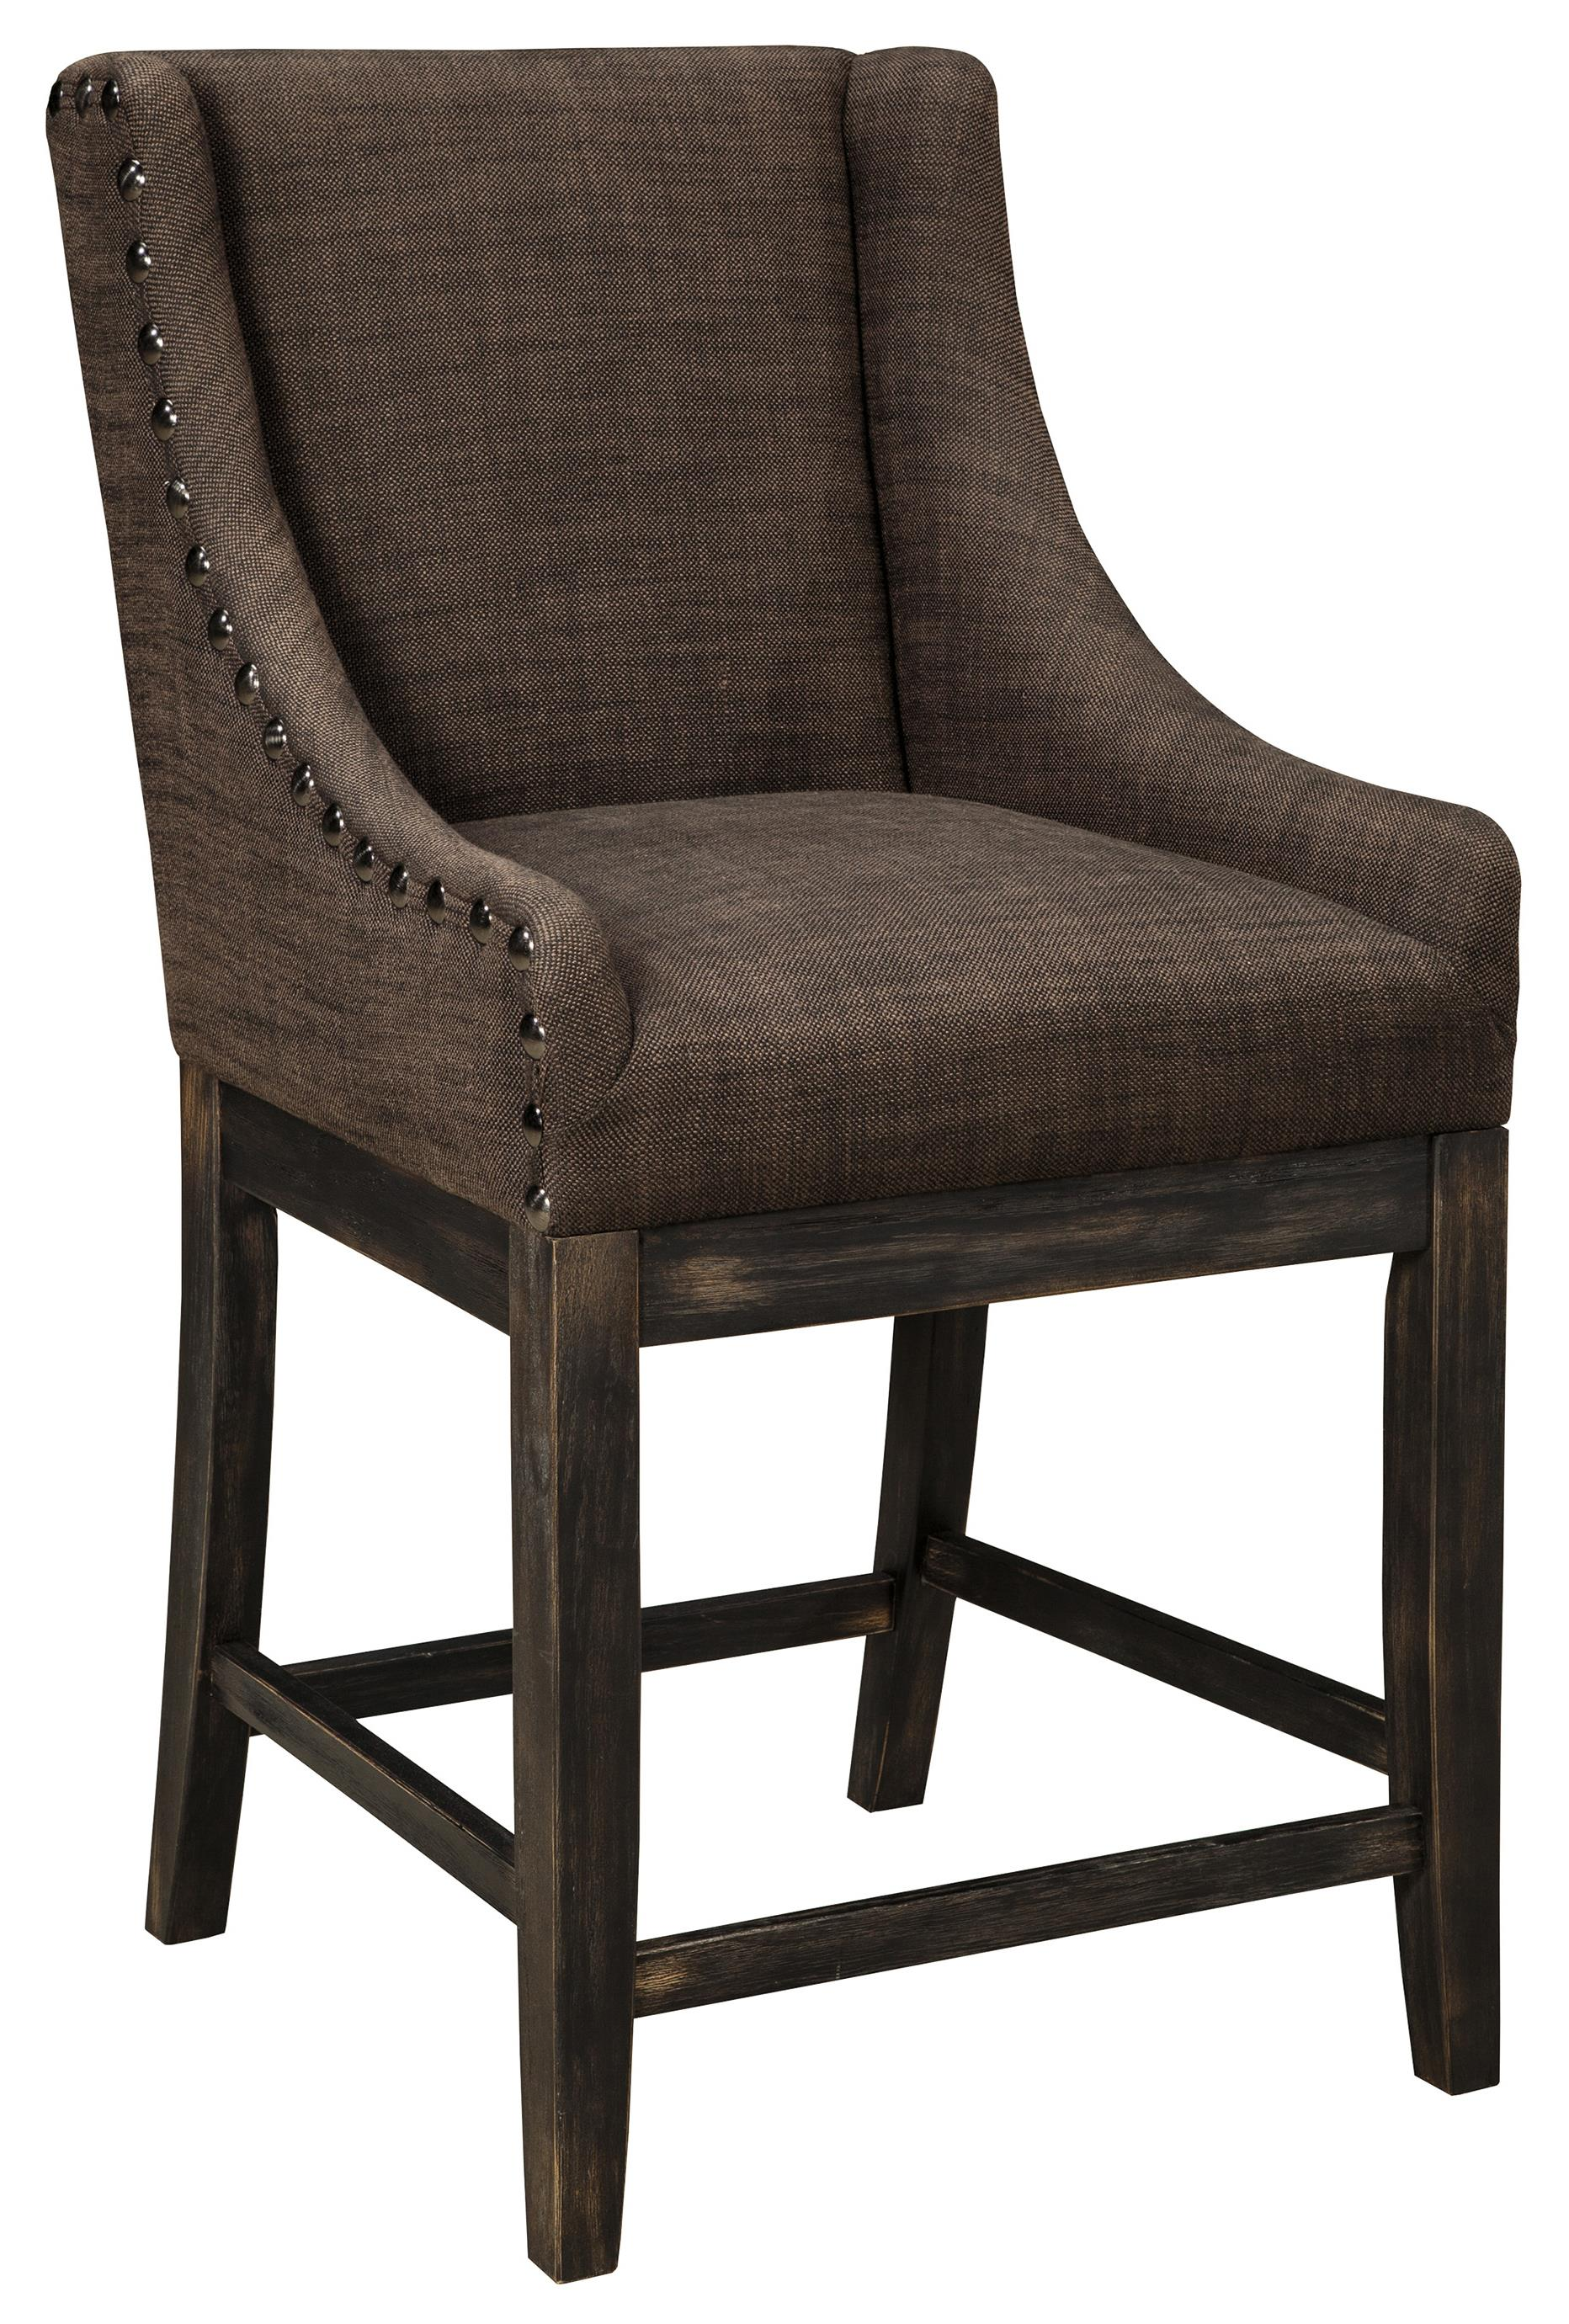 Upholstered Barstool with Sloping Wing Arms amp Textured  : products2Fsignaturedesignbyashley2Fcolor2Fmoriannd608 424 b0 from www.wolffurniture.com size 1864 x 2761 jpeg 660kB